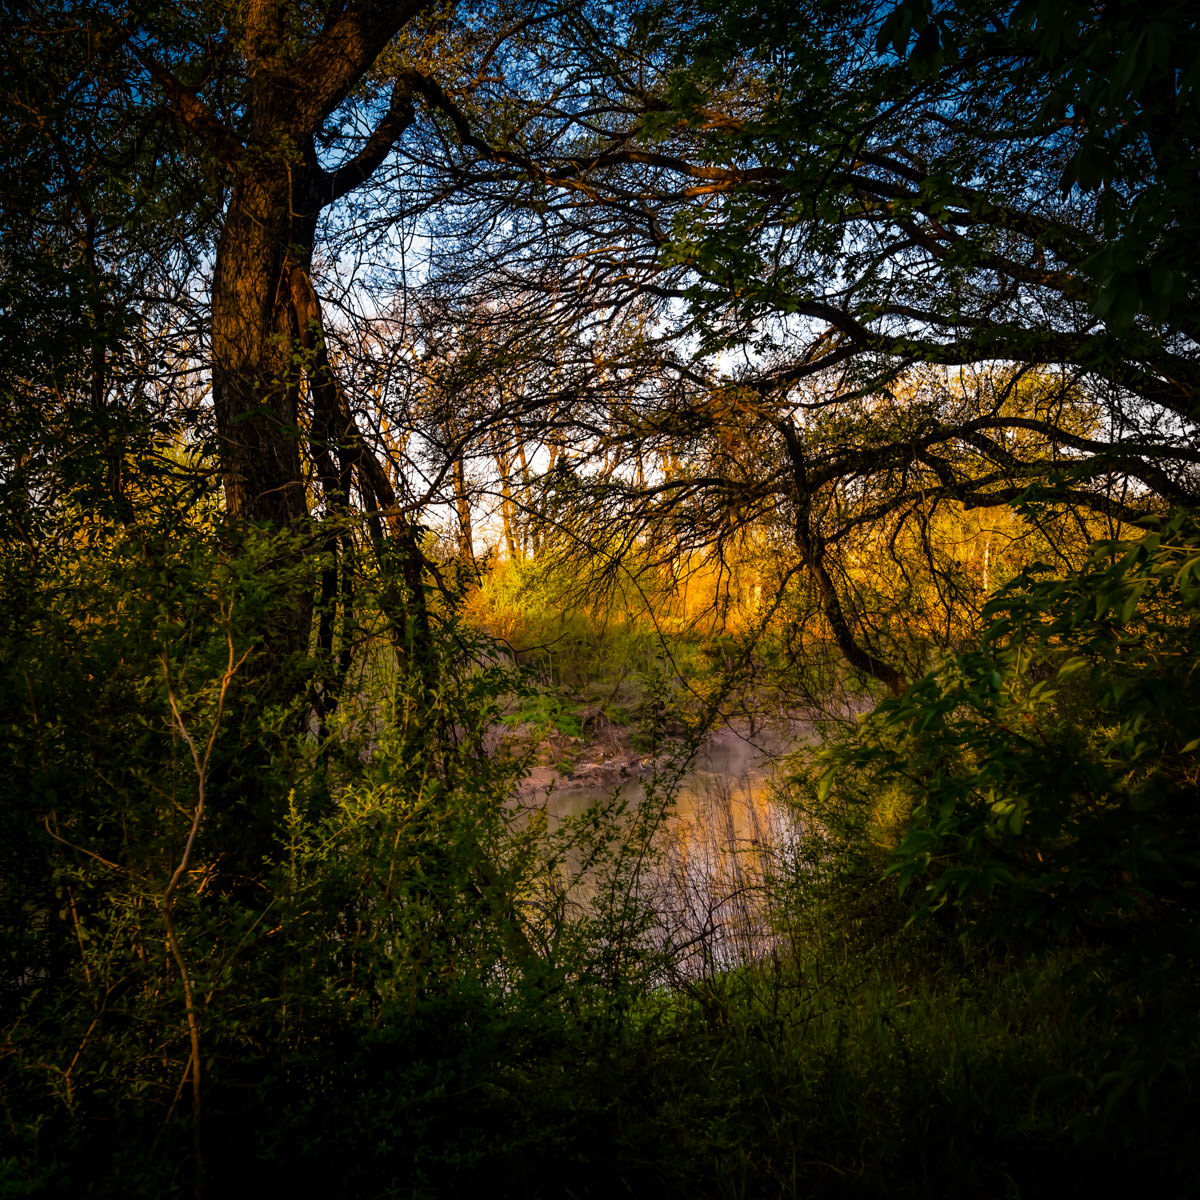 The early-morning sun lights up the far bank of the Trinity River as it meanders through the Great Trinity Forest in South Dallas.